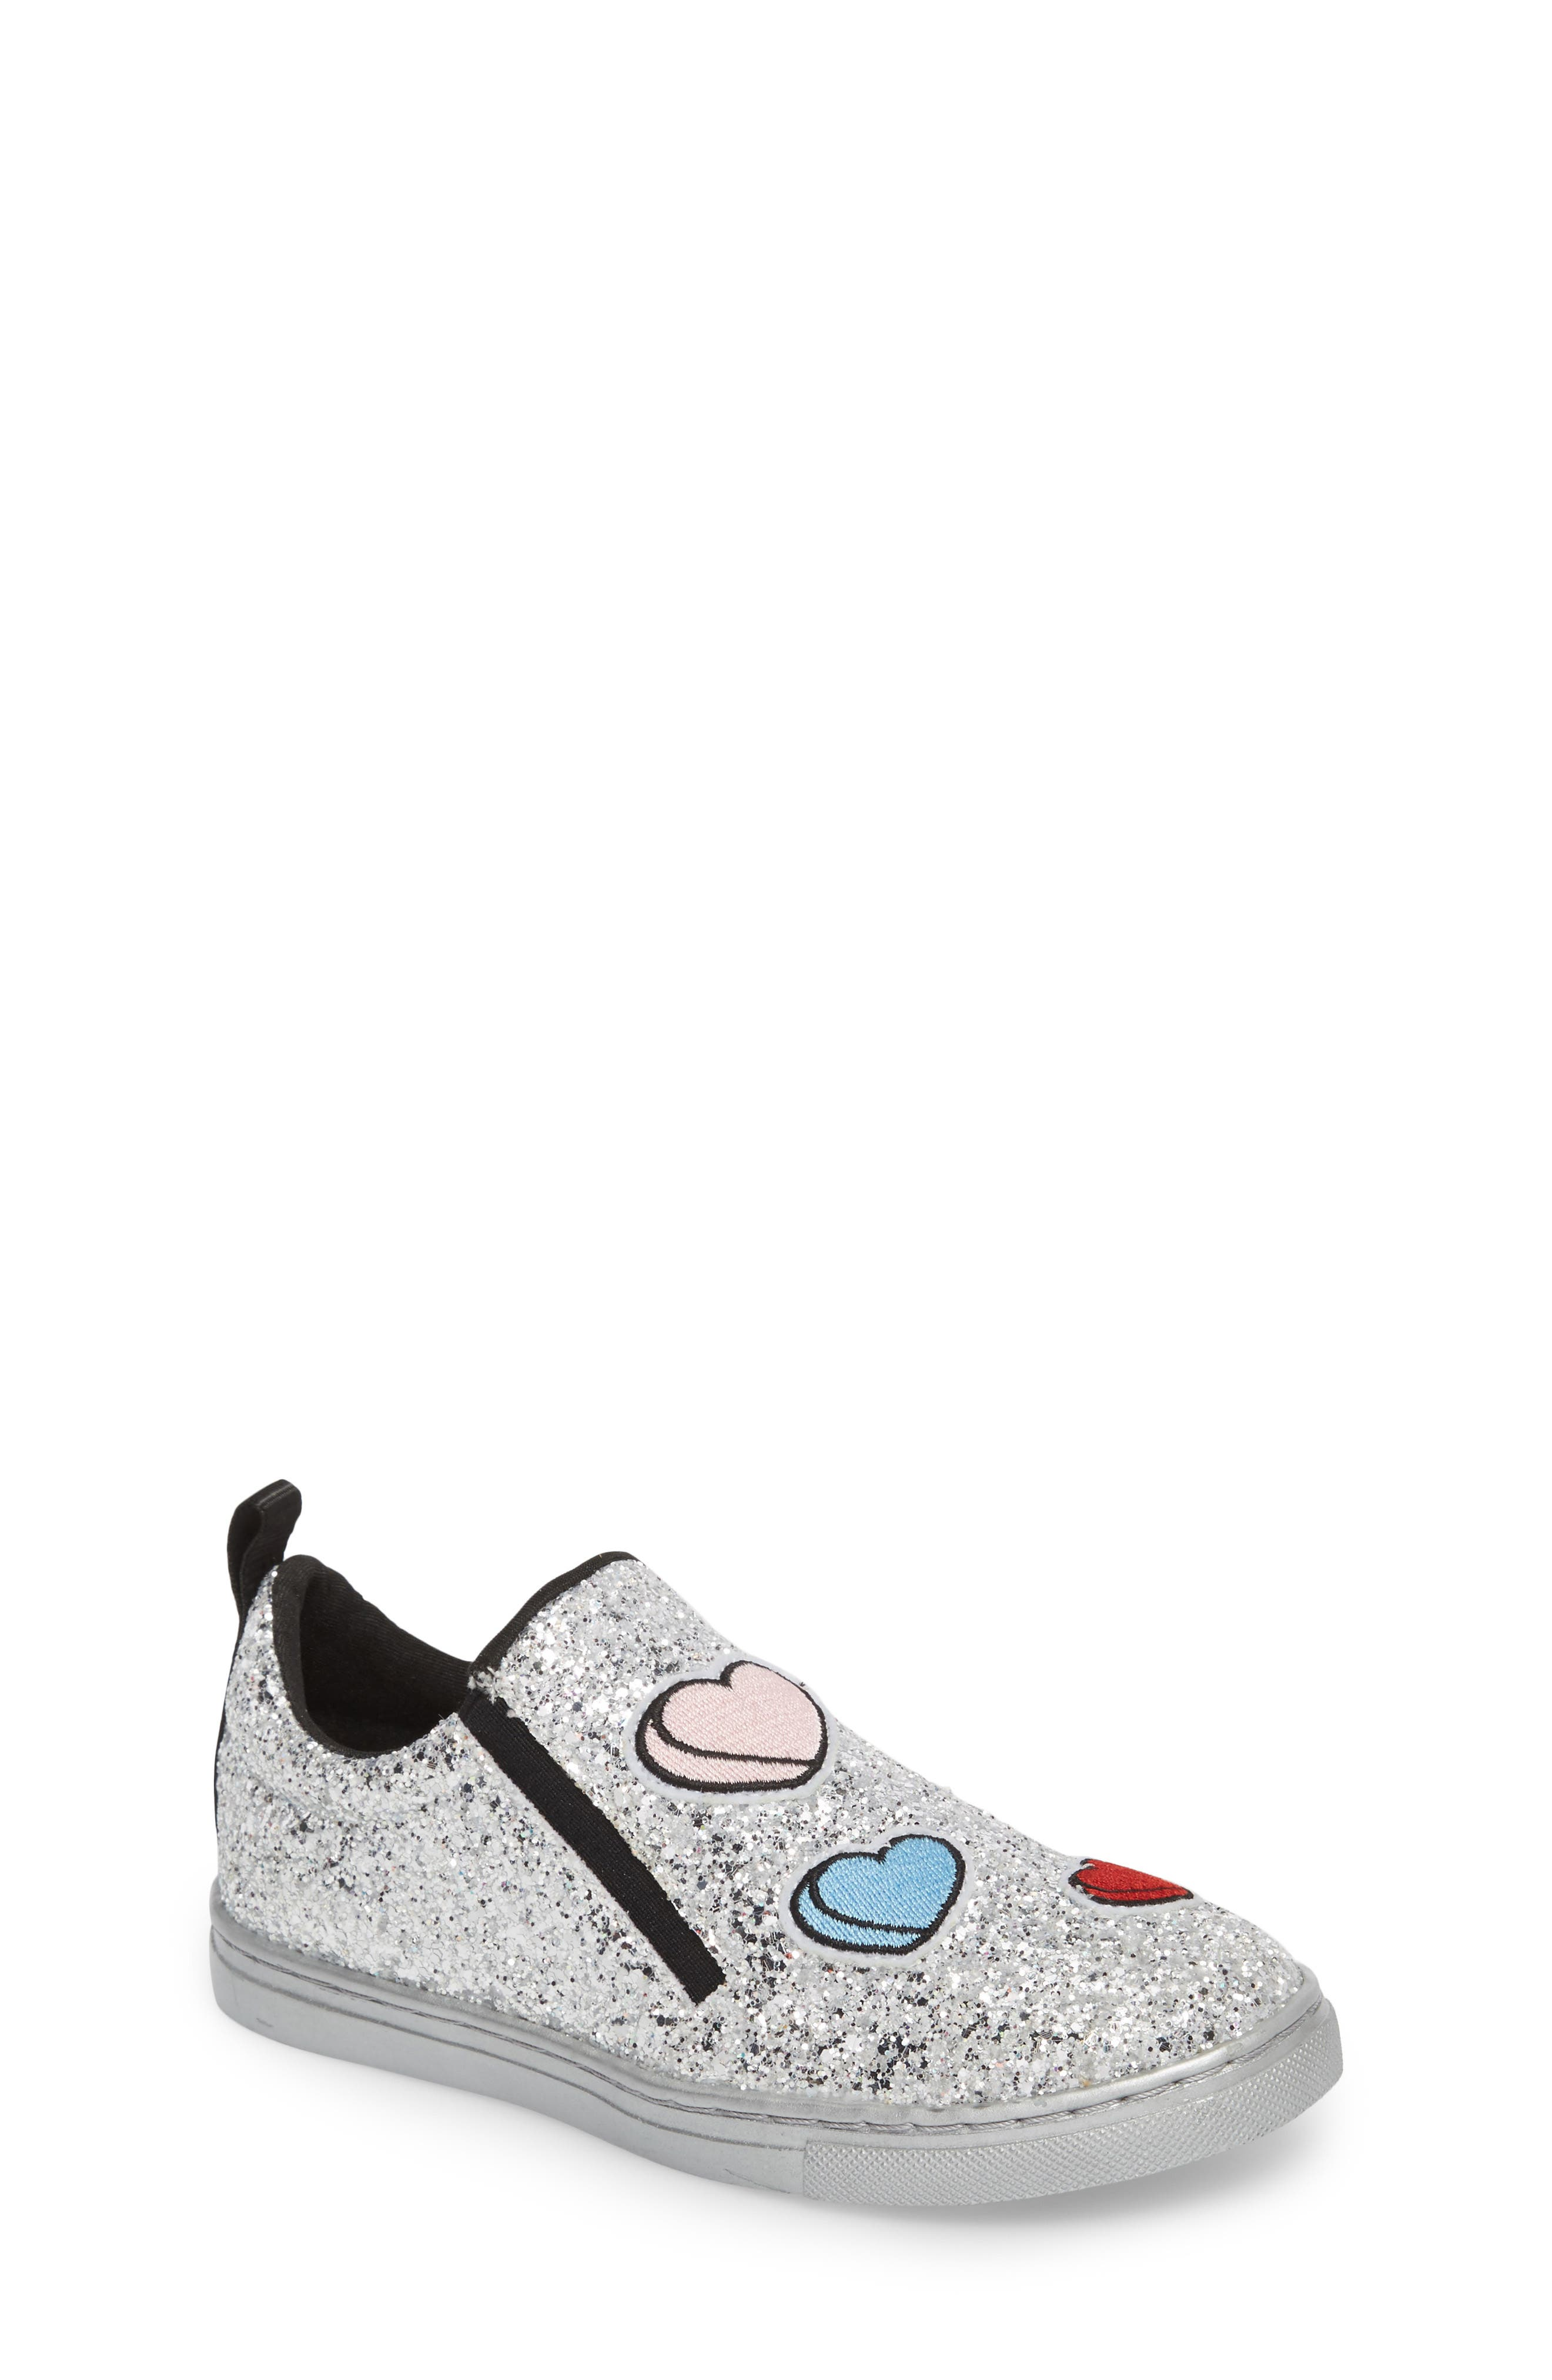 Zach Sneaker,                         Main,                         color, Silver Multi Glitter